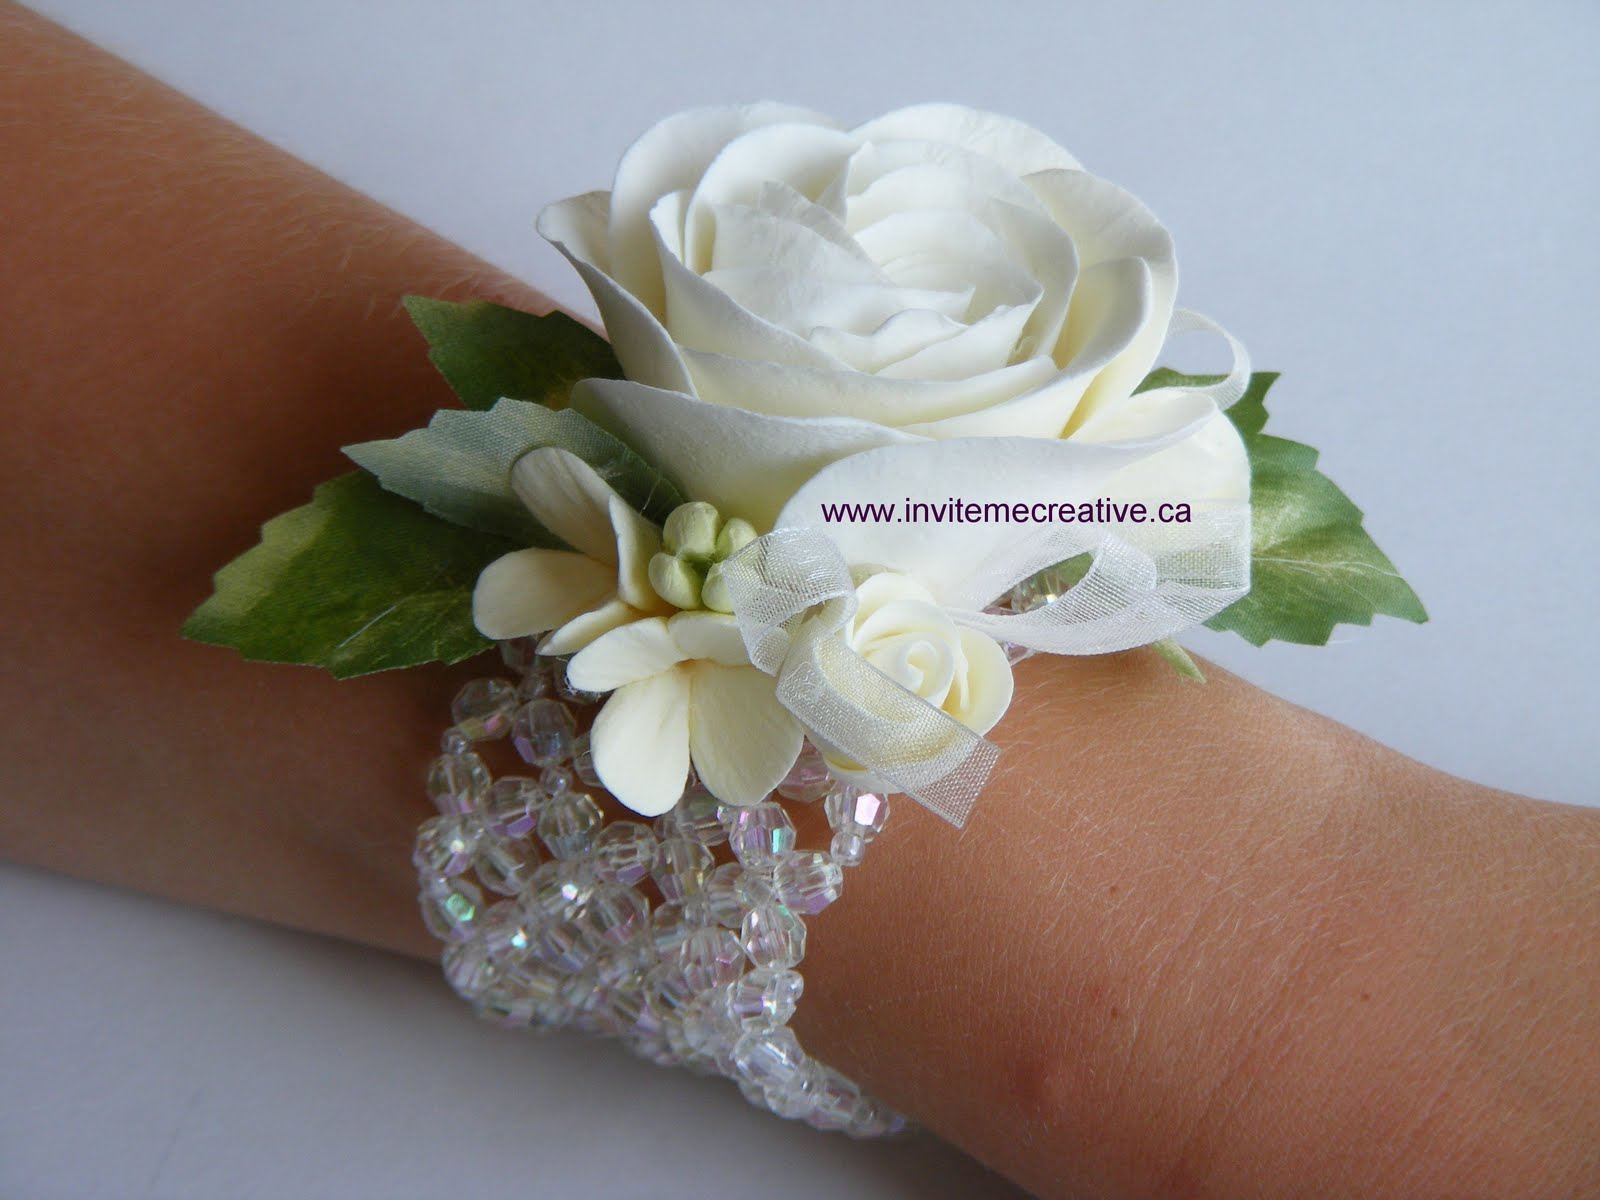 Invite me creative announcements prom flowers corsages i am thrilled to be offering very special keepsake prom corsages and boutonnieres to the graduating class of 2011 dramatic and big hair flowers also make freerunsca Image collections